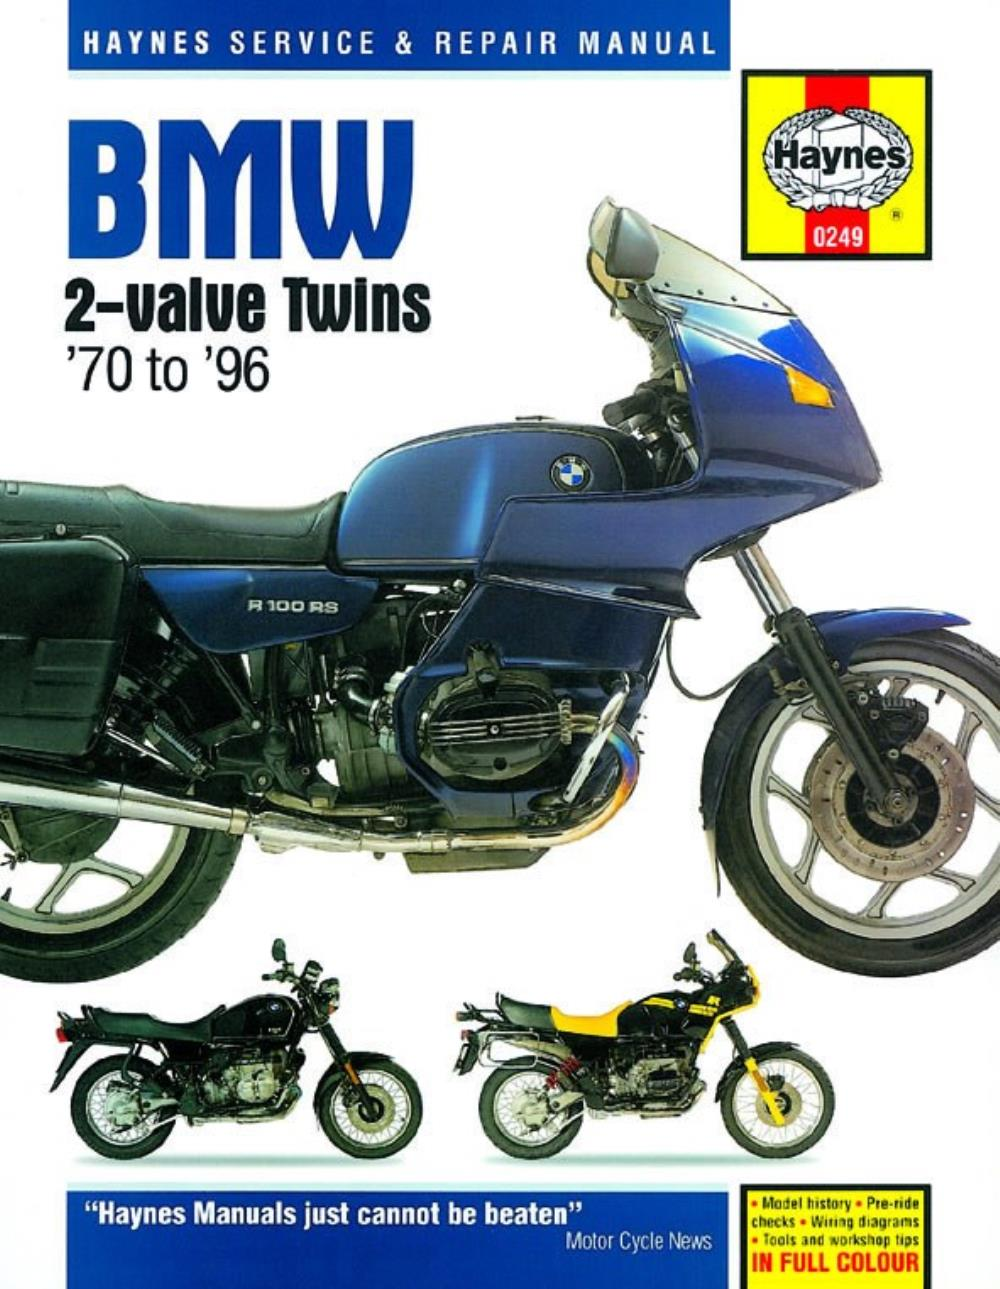 Manual Haynes For 1980 Bmw R 100 Rt Ebay Wiring Diagrams Image Is Loading